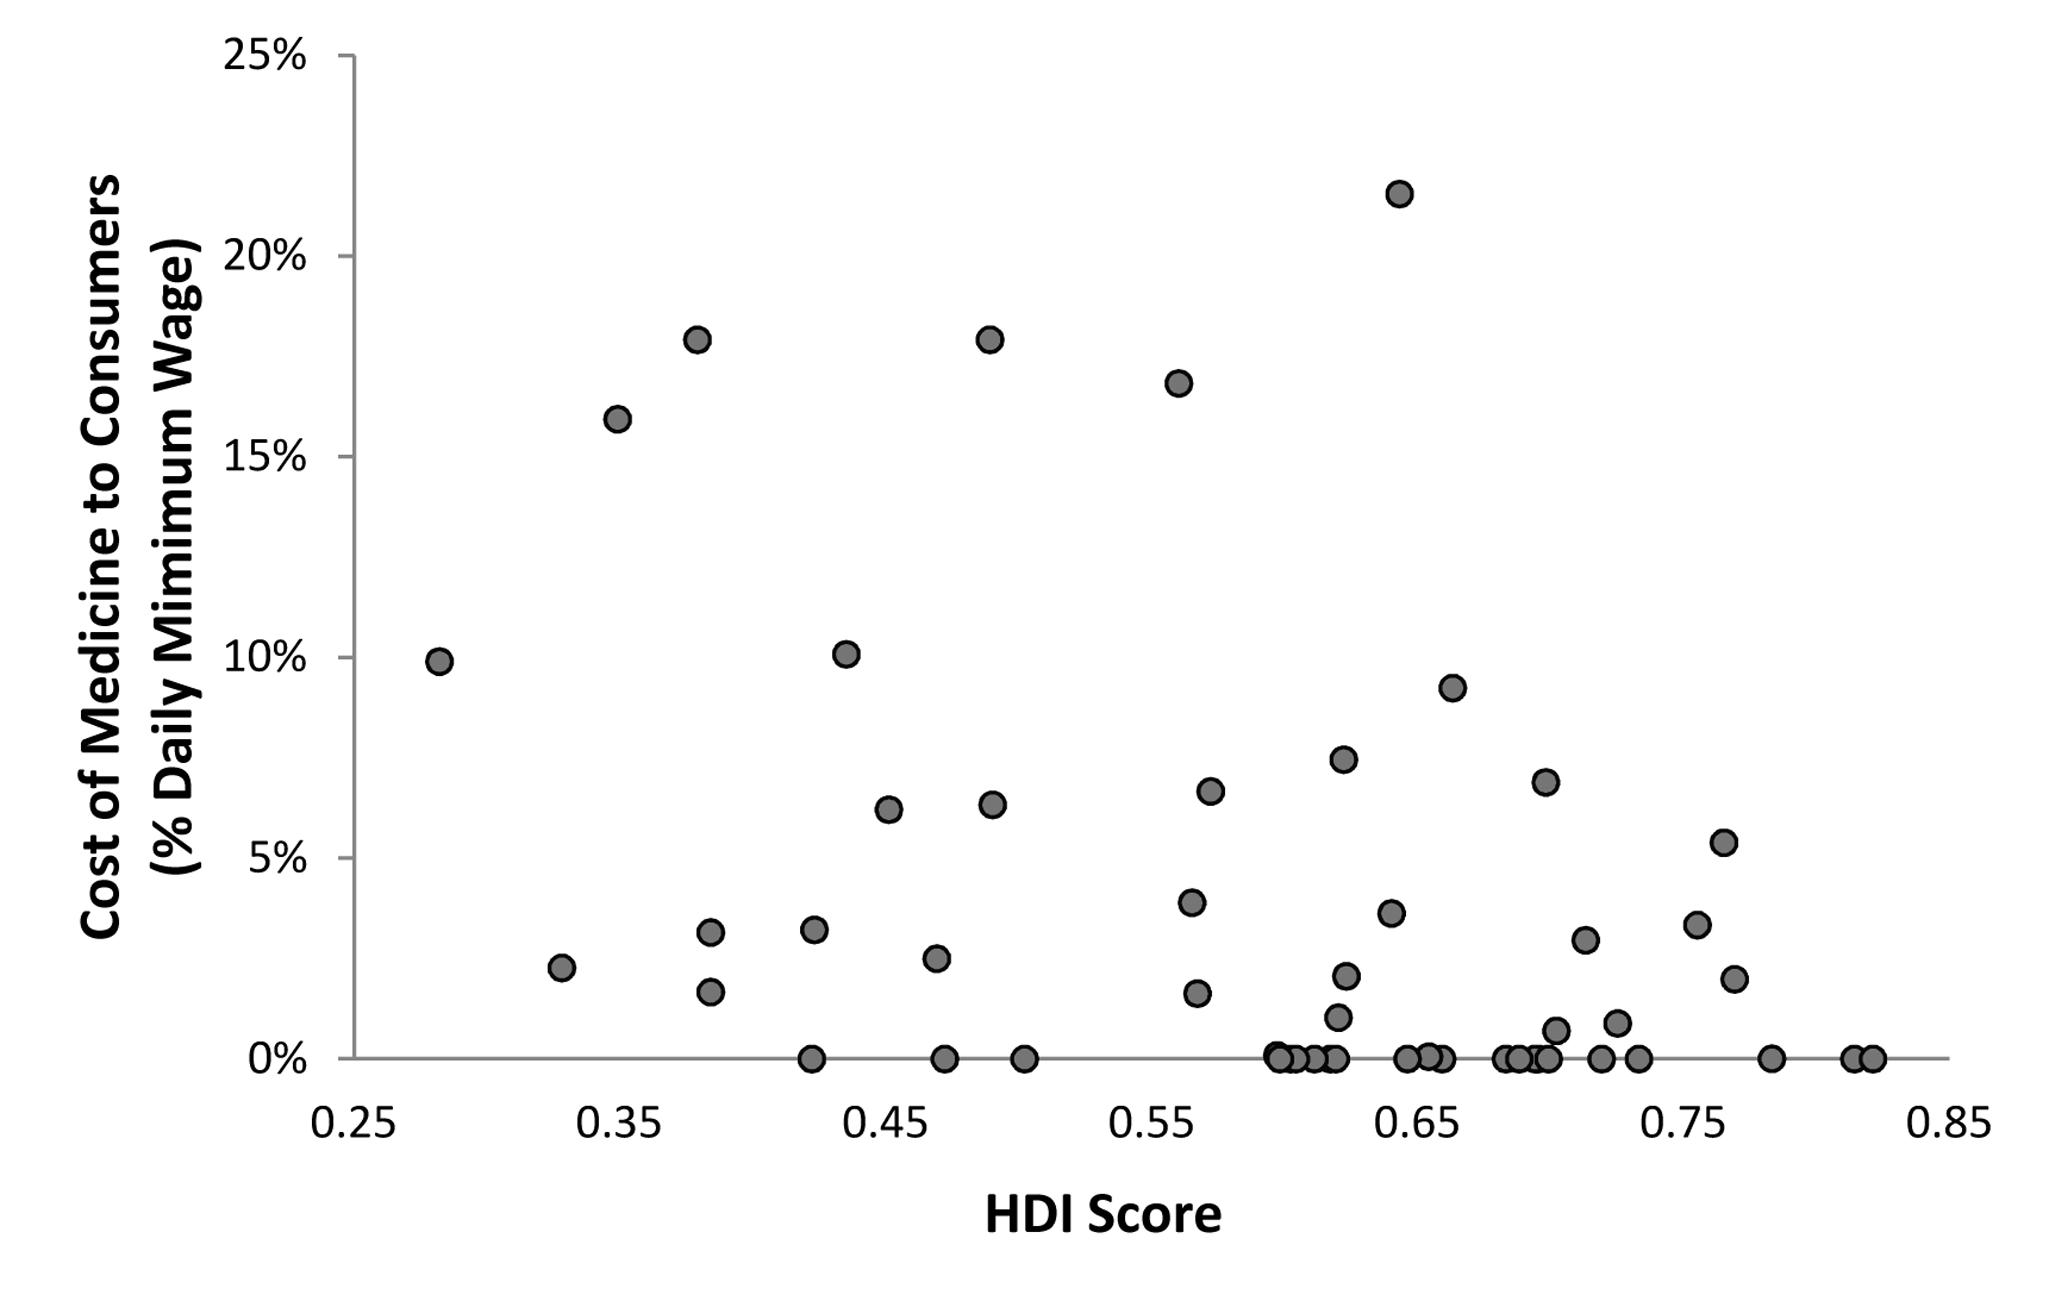 Association between HDI and affordability.